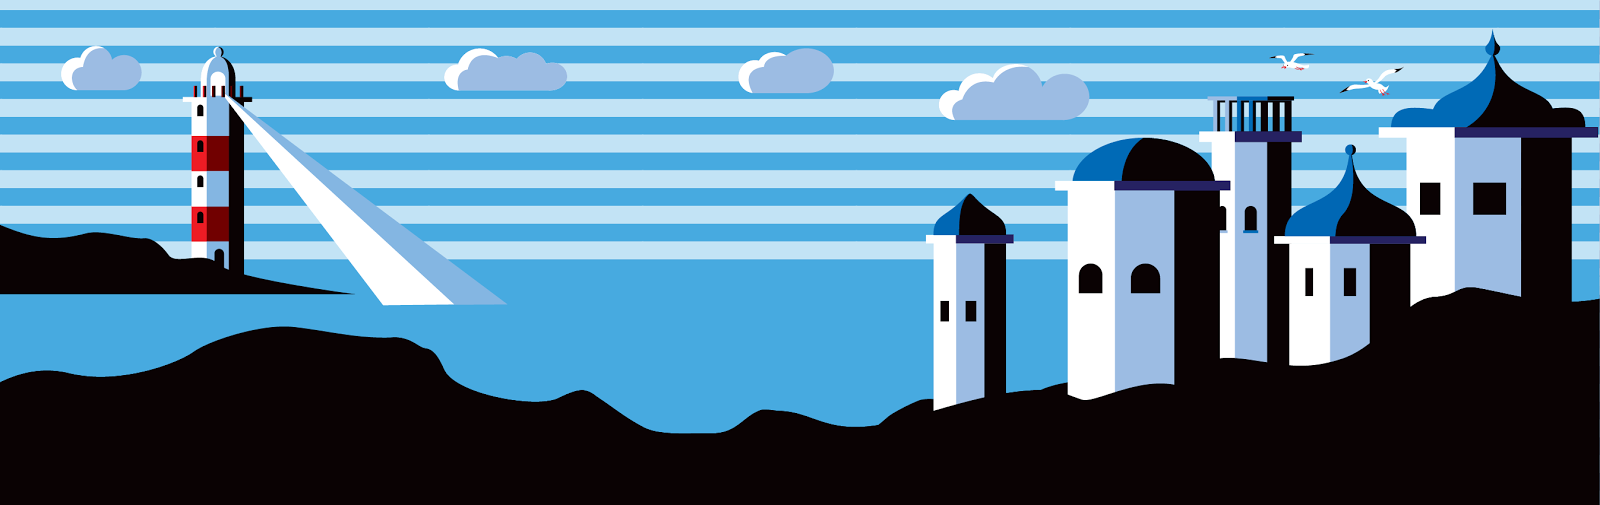 Greek Island - Jen Haugan Animation & Illustration